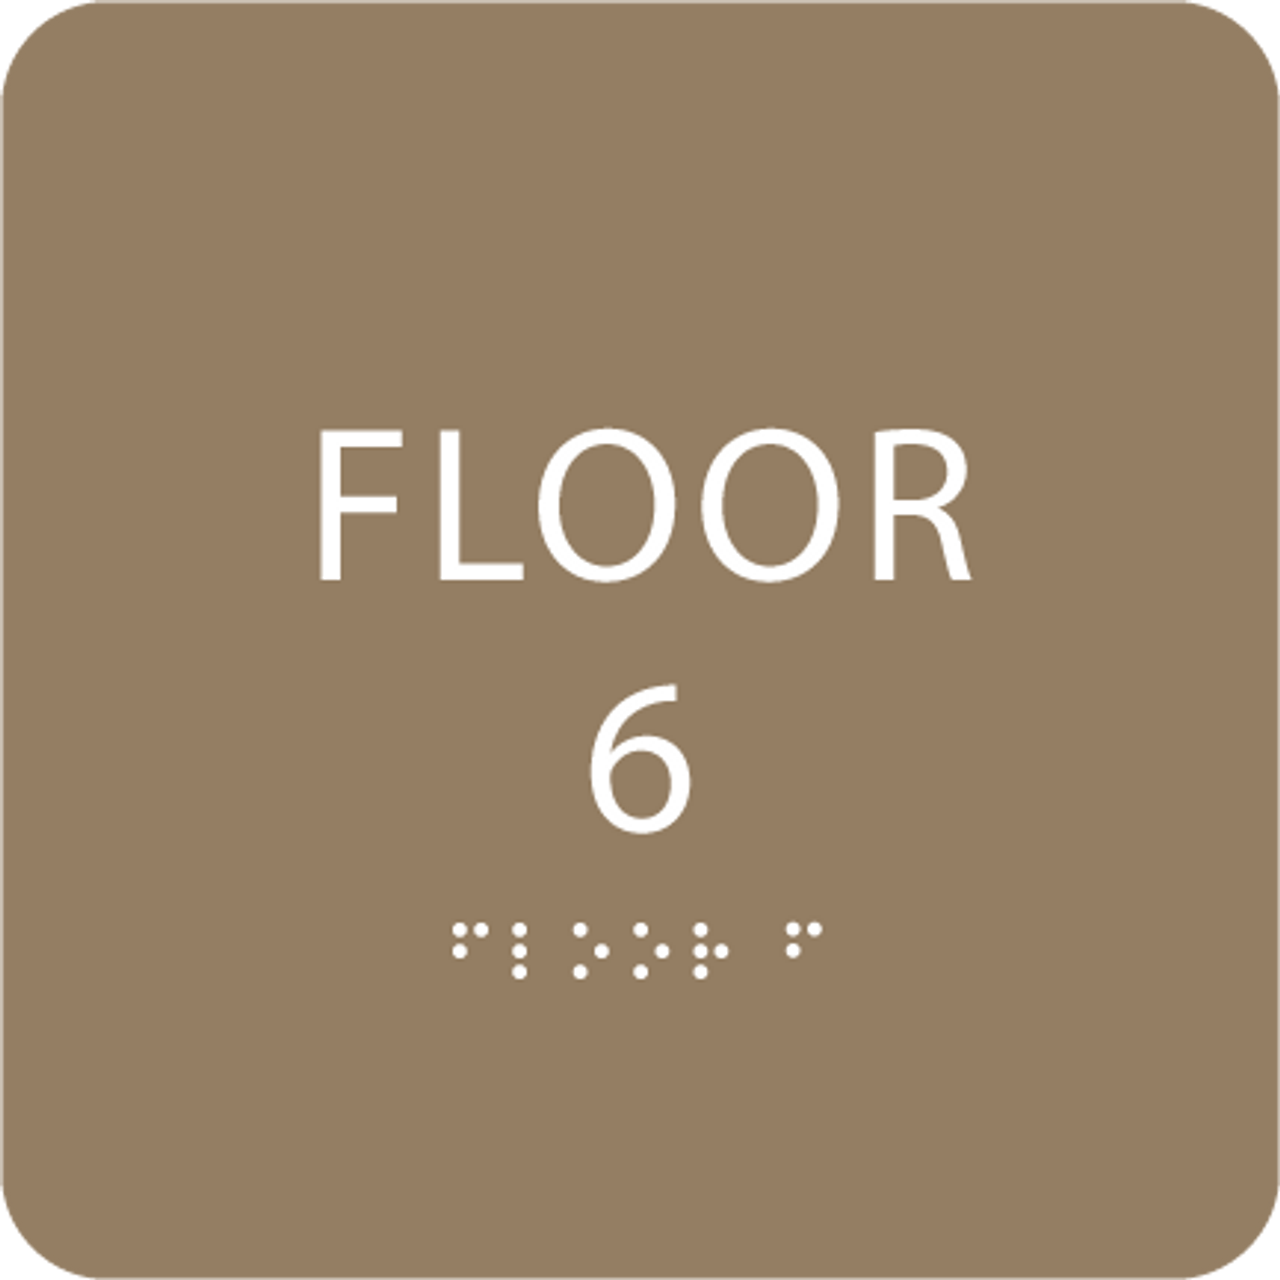 Brown Floor 6 Level Identification ADA Sign